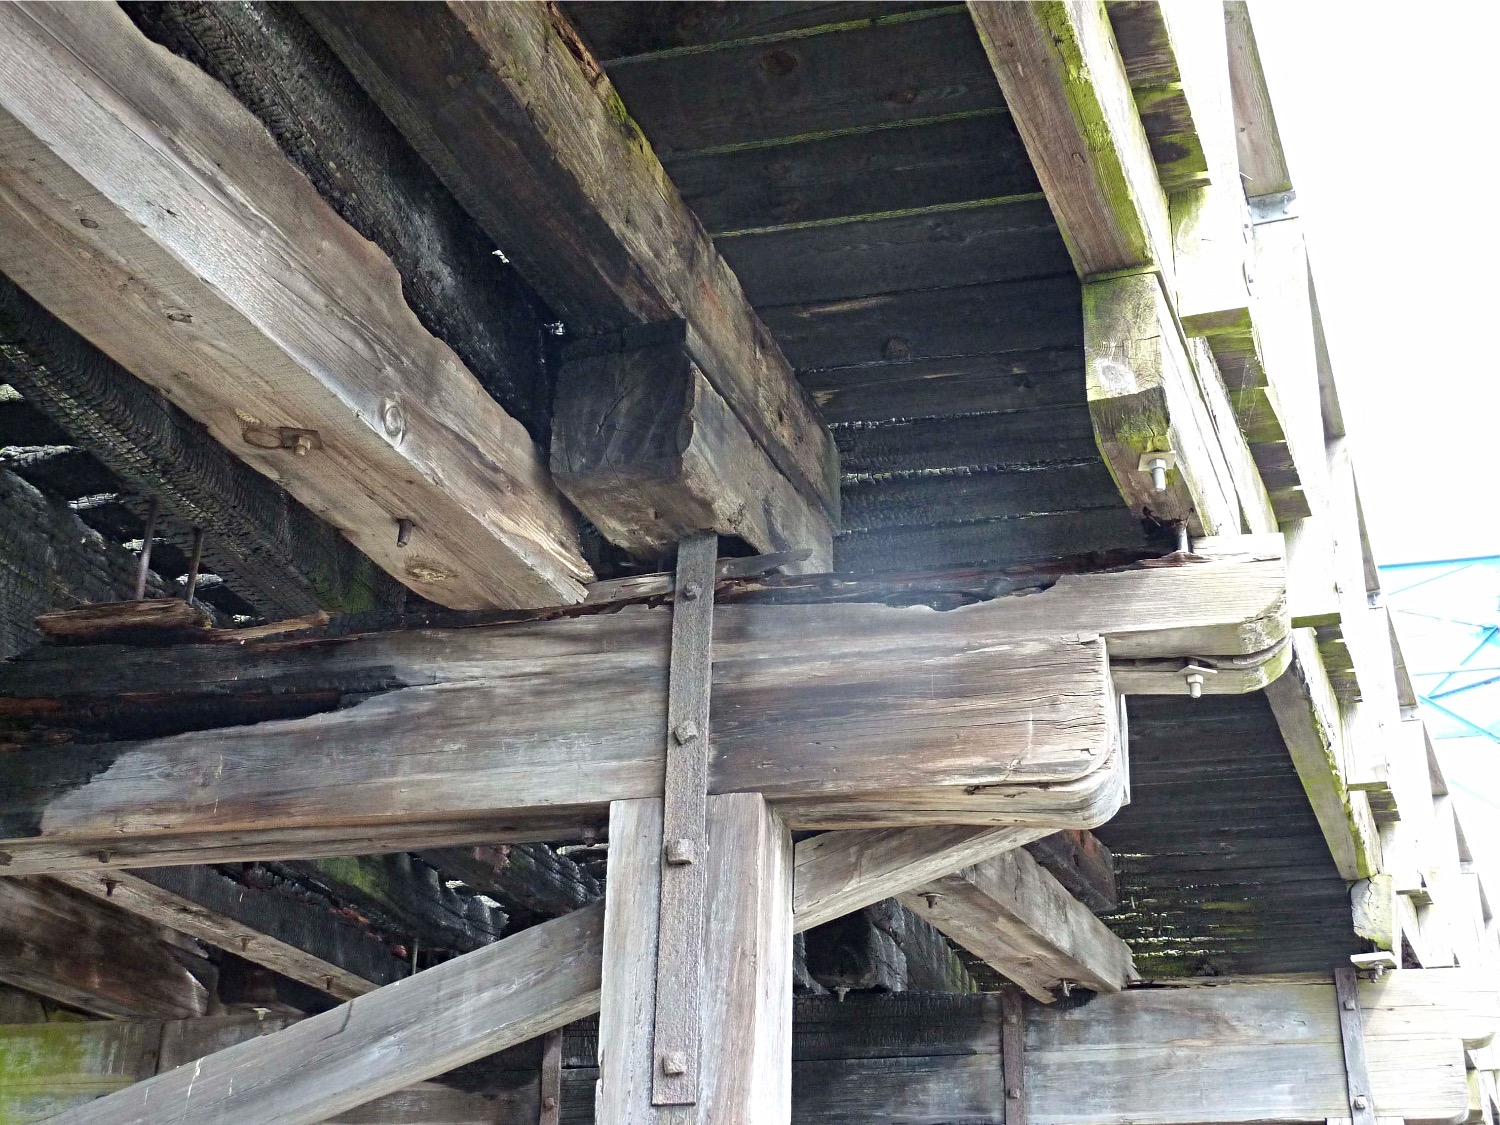 3. Typical Fire Damage and Decay copy_edited